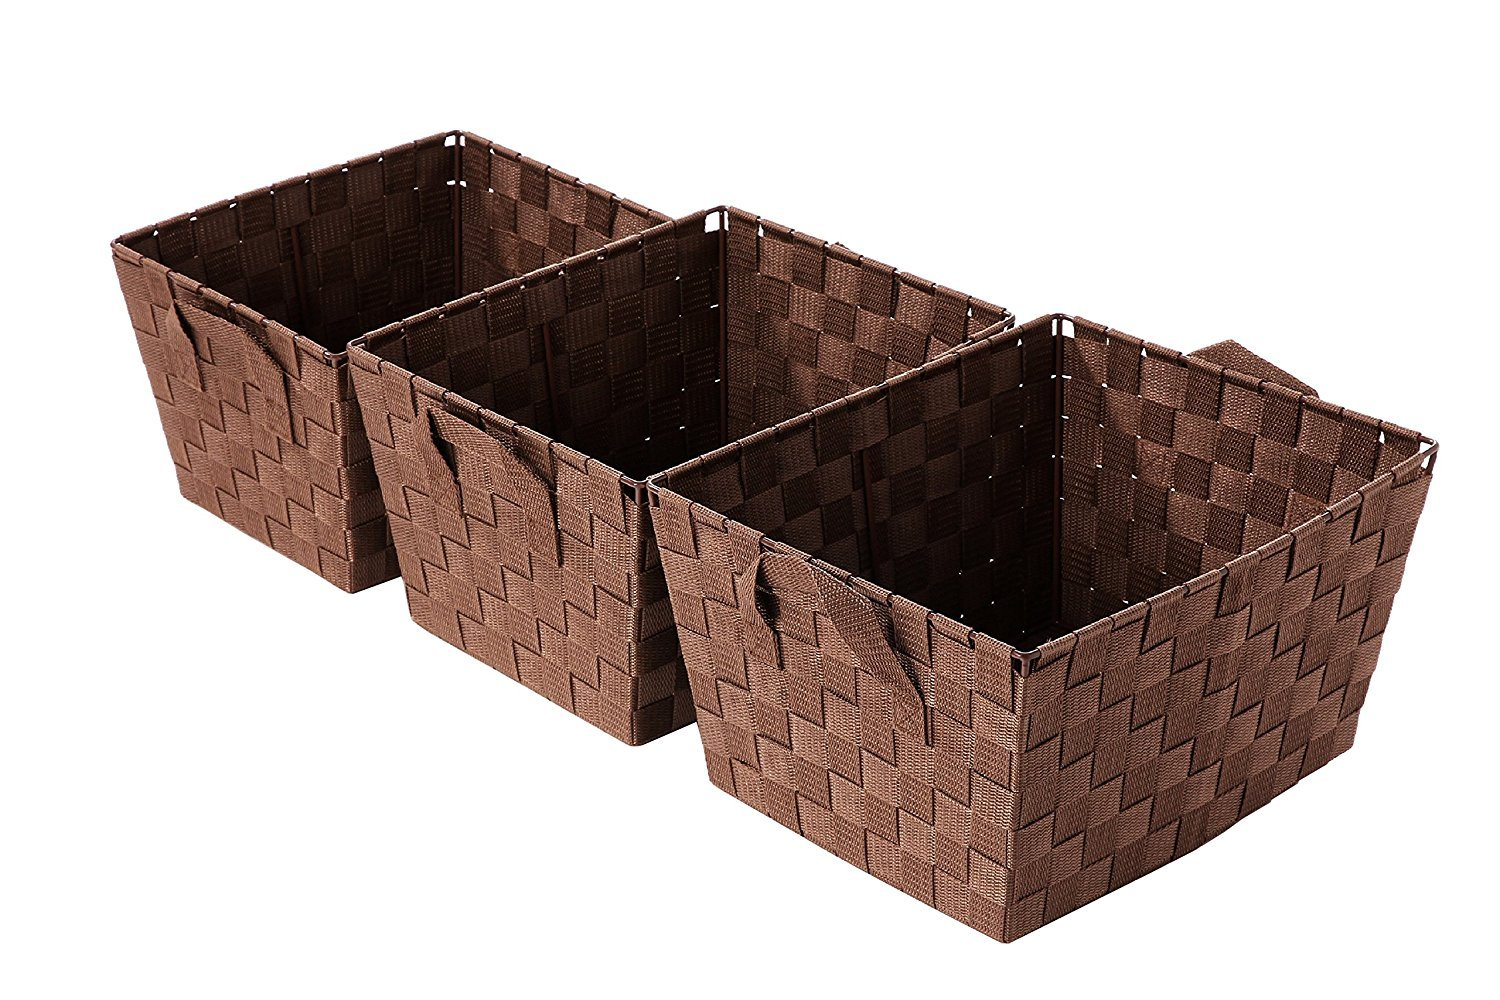 Juvale Woven Storage Baskets - 3-Piece Storage Tote Baskets, Woven Strap Organization Containers, Decorative Shelf Baskets for Home Closet, Bedroom Drawers - Small, Medium, Large - Brown -  - living-room-decor, living-room, baskets-storage - 81sY7t%2BFweL -